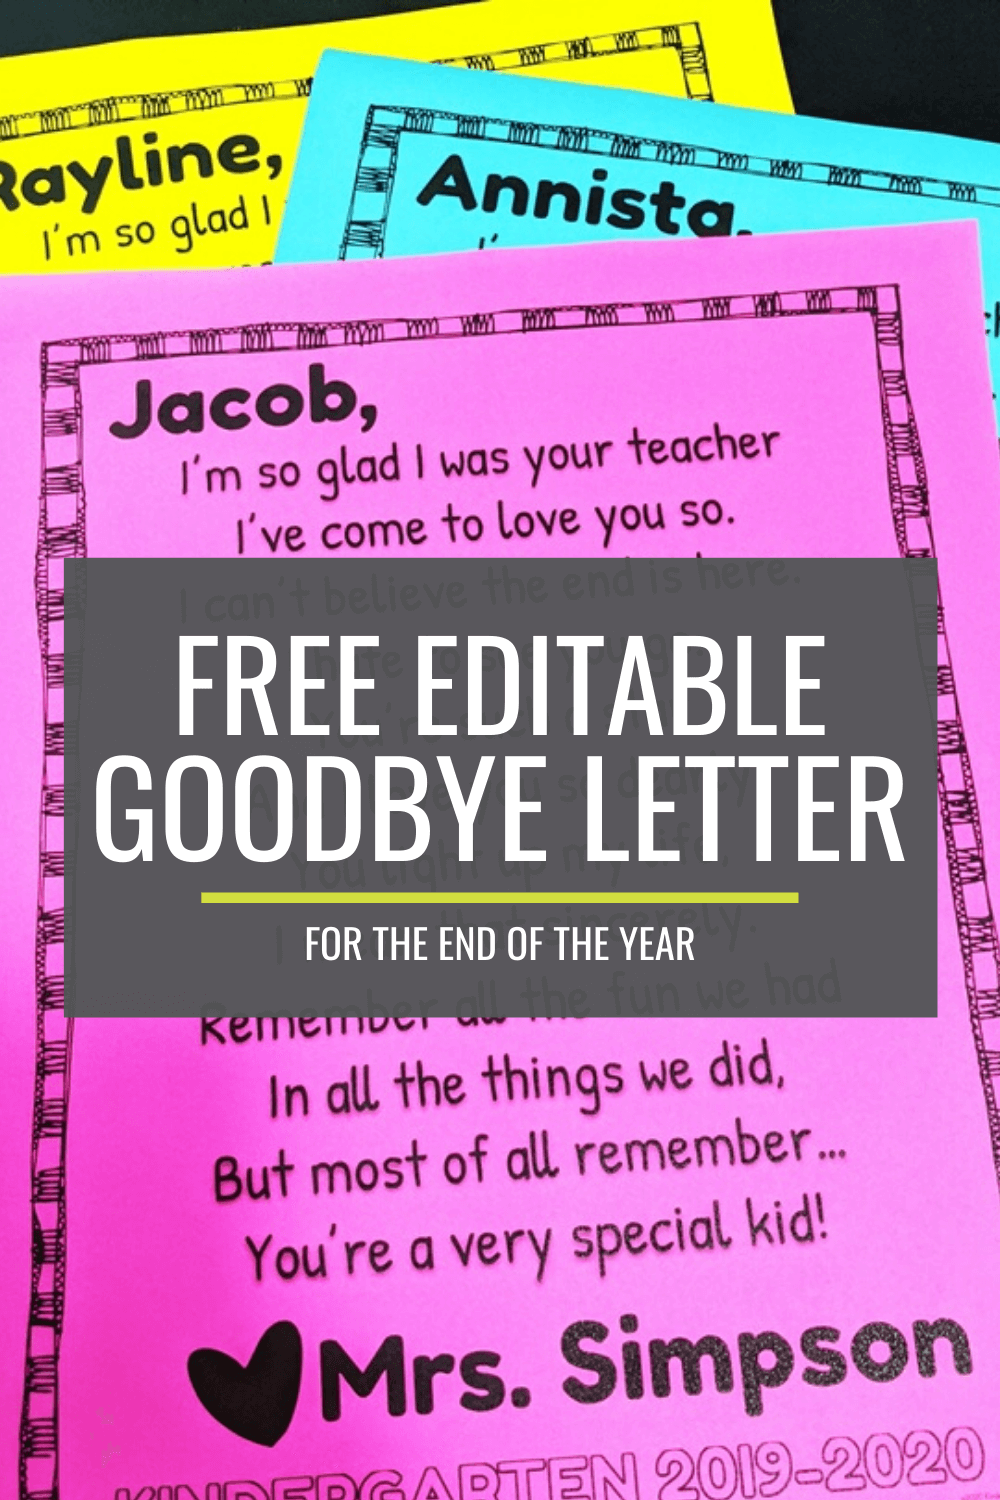 Free Editable Goodbye Letter for the End of the Year